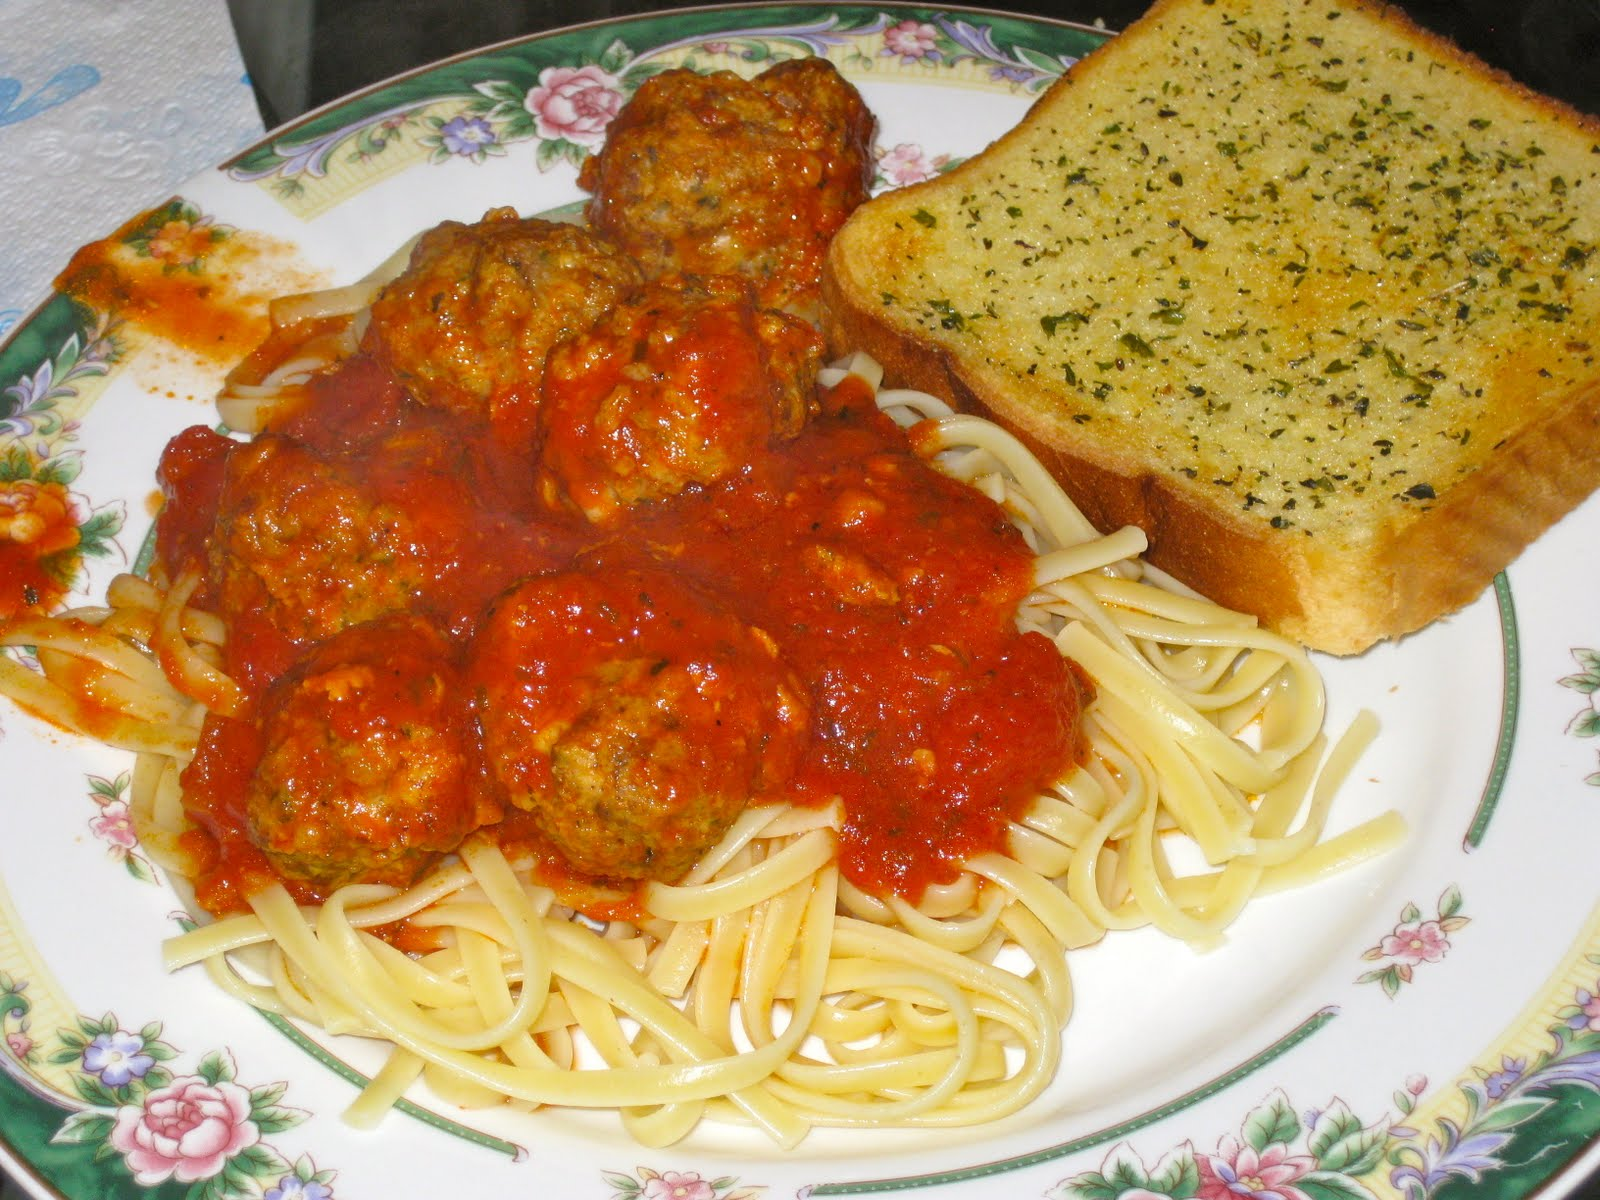 A Taste of the Best: Homemade Italian Meatballs